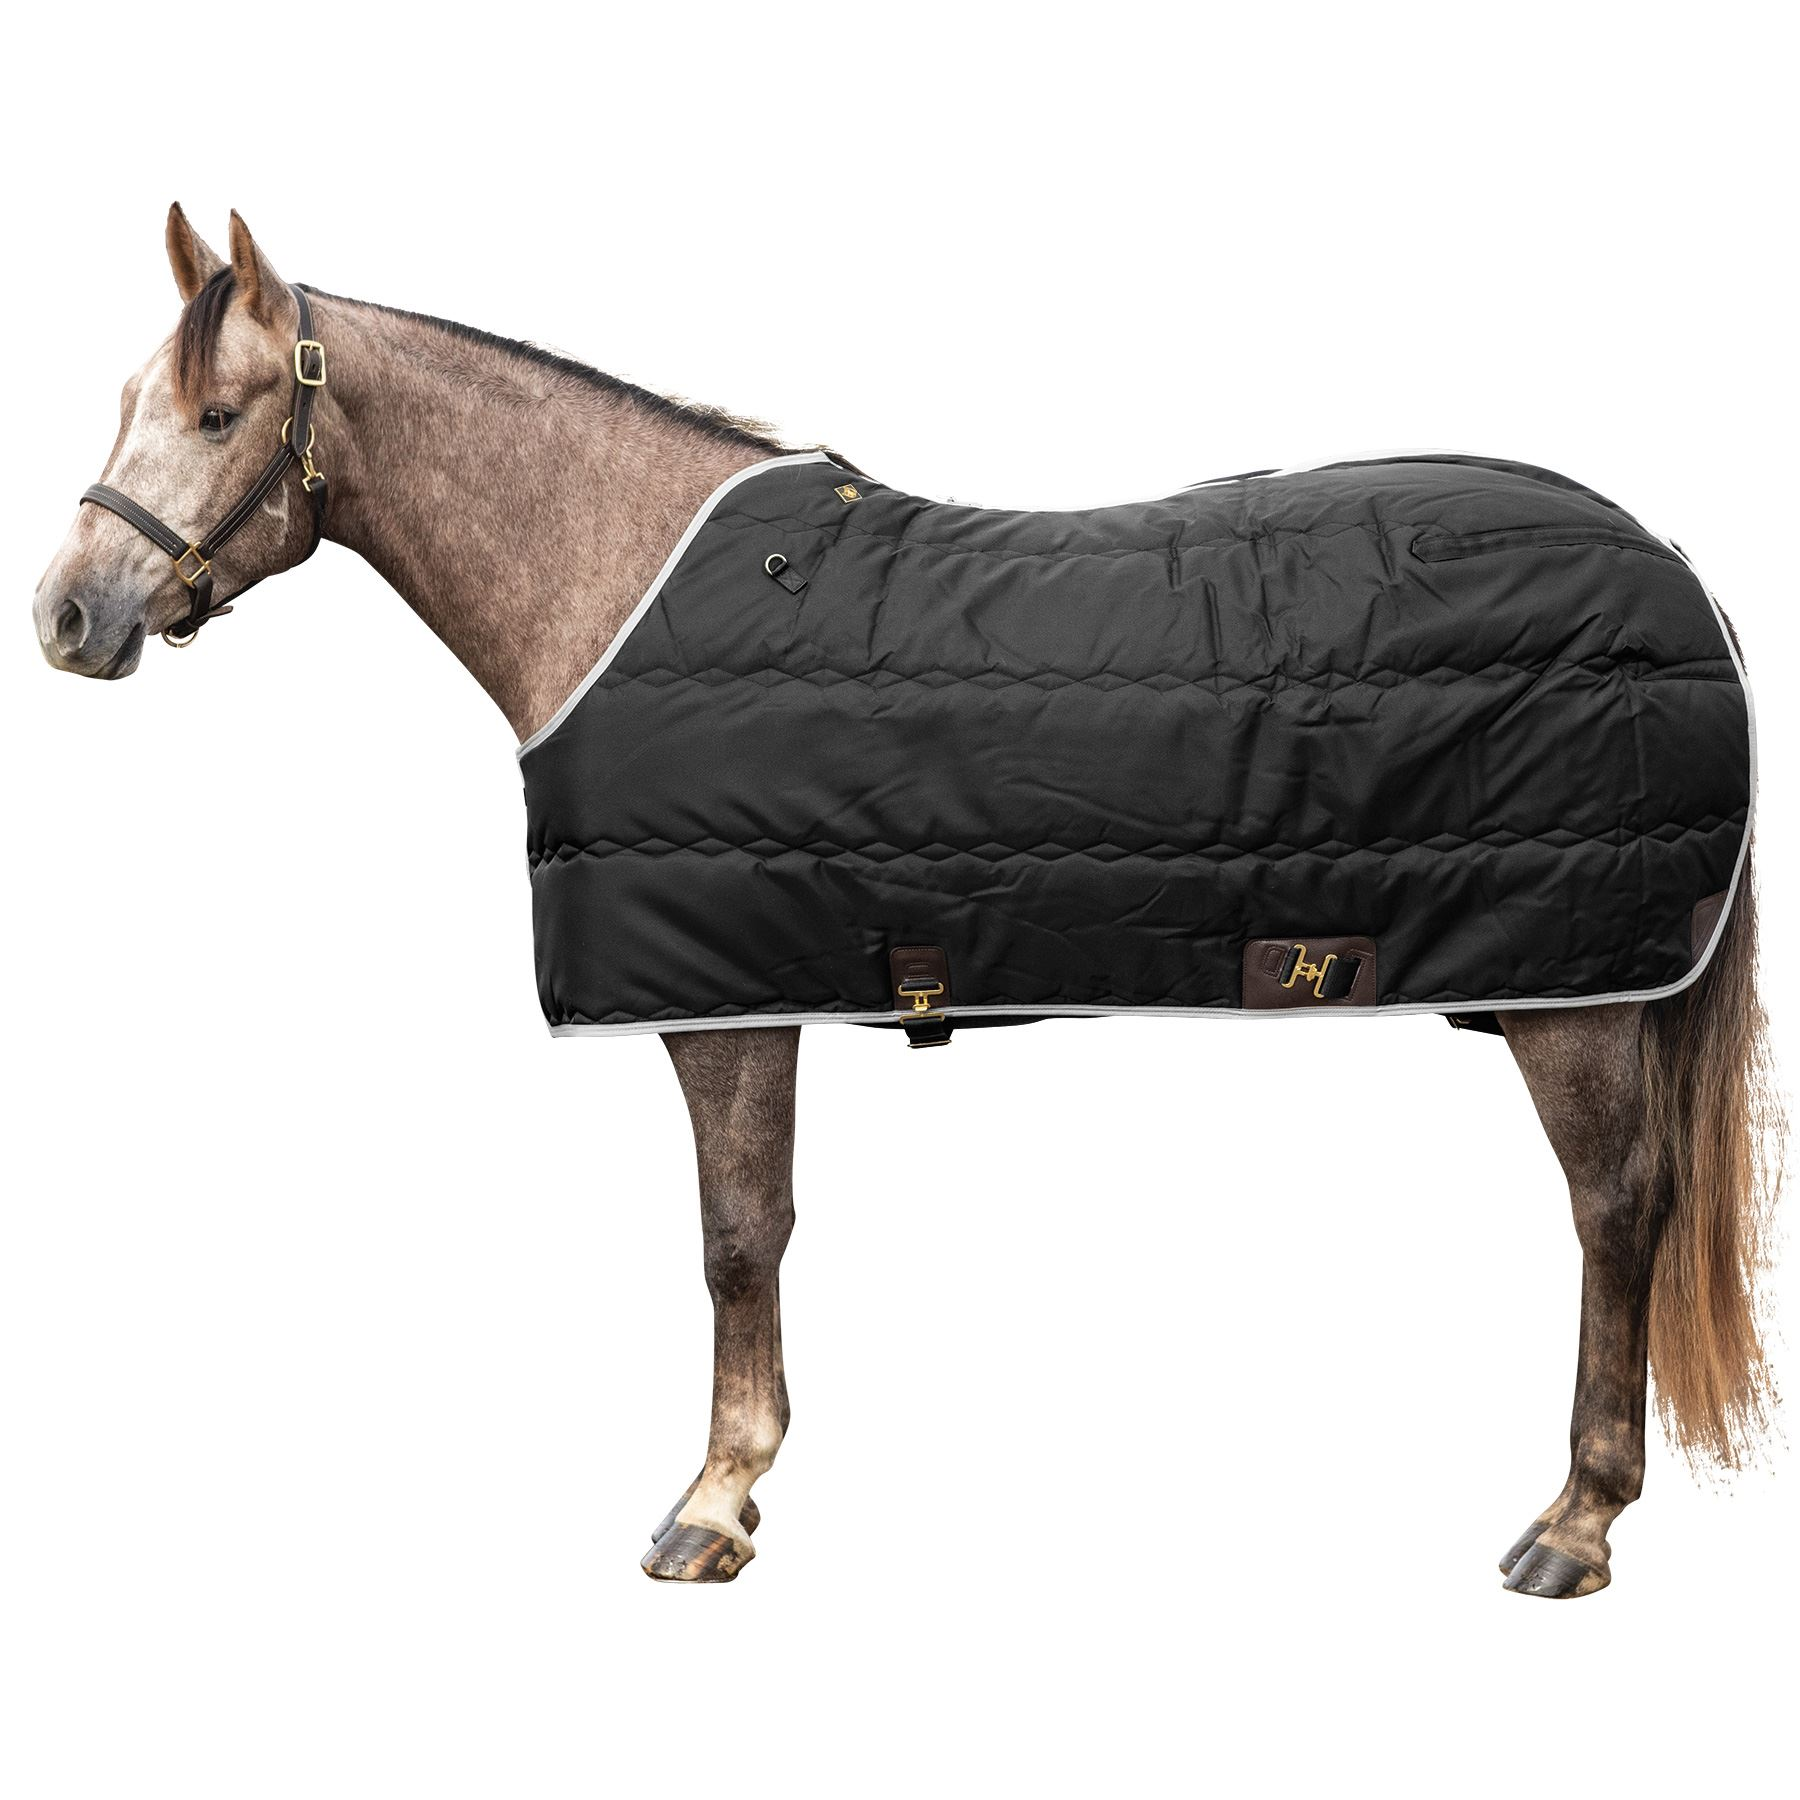 "Big ""D"" Closed Front Kodiak Stable Blanket"